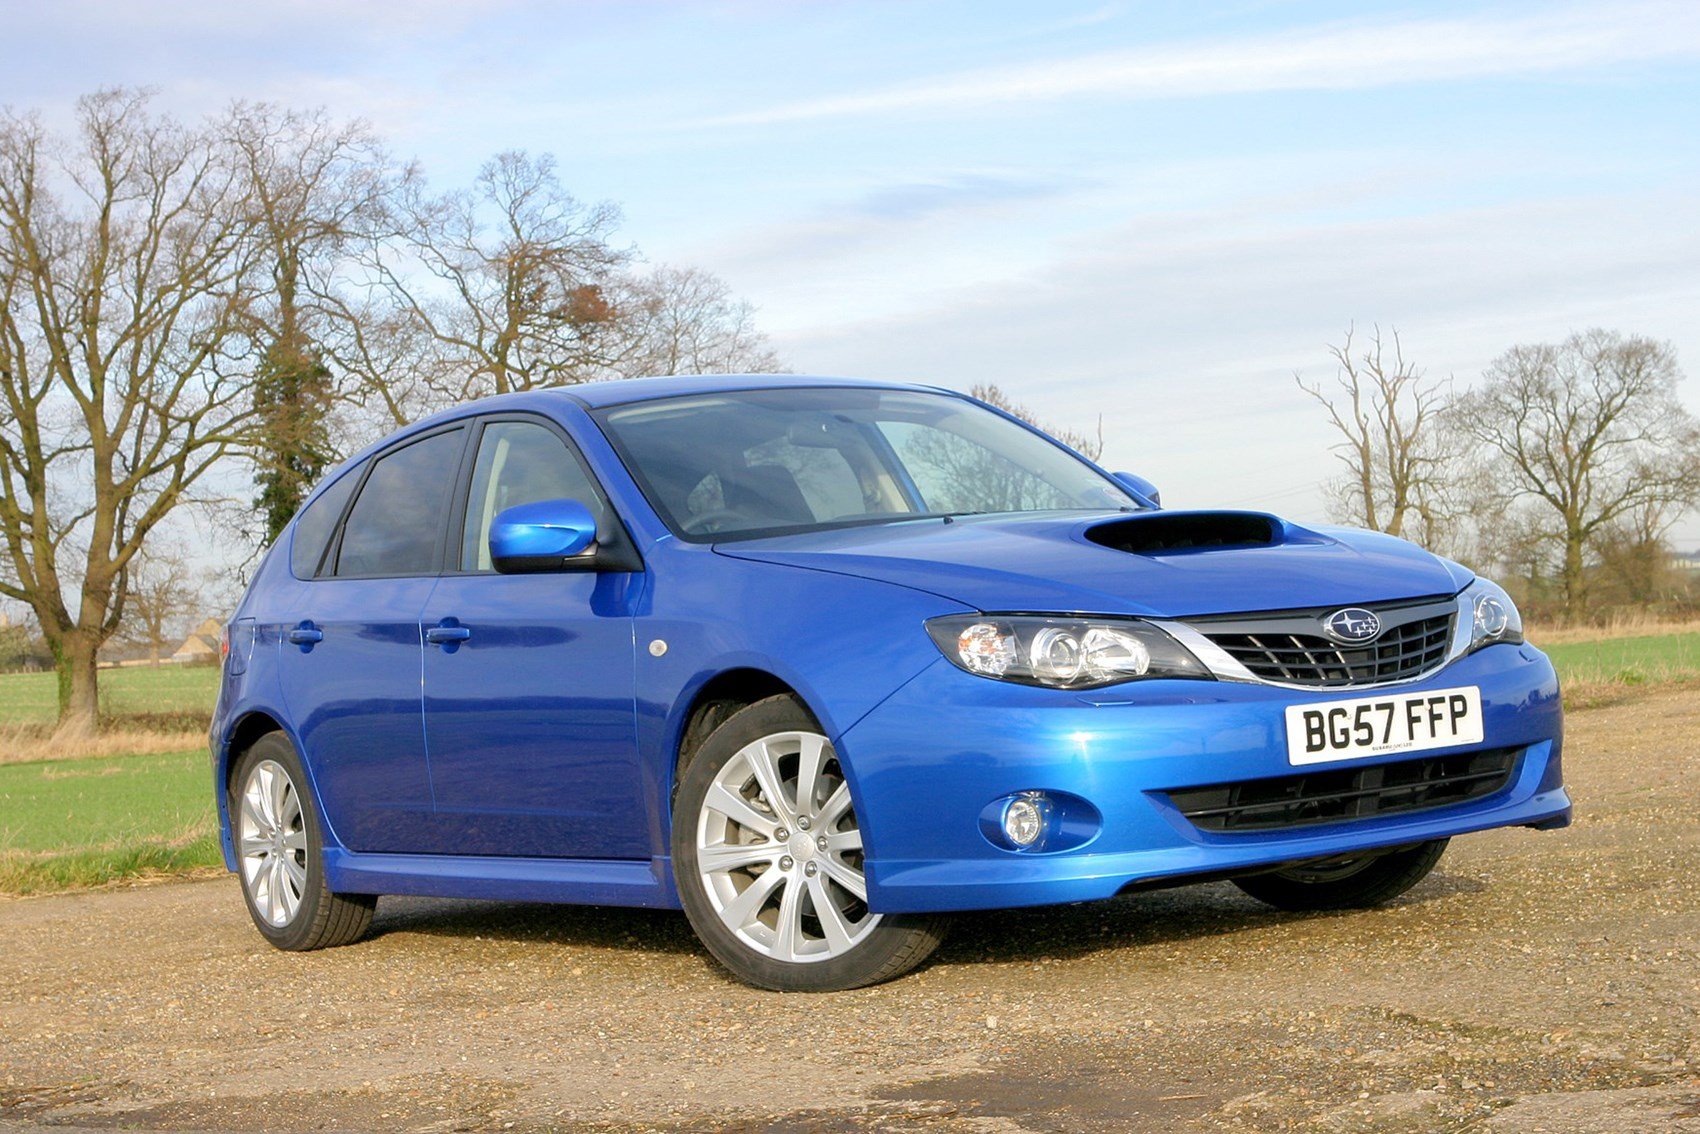 Subaru Impreza WRX - used hatchbacks for less than £4k